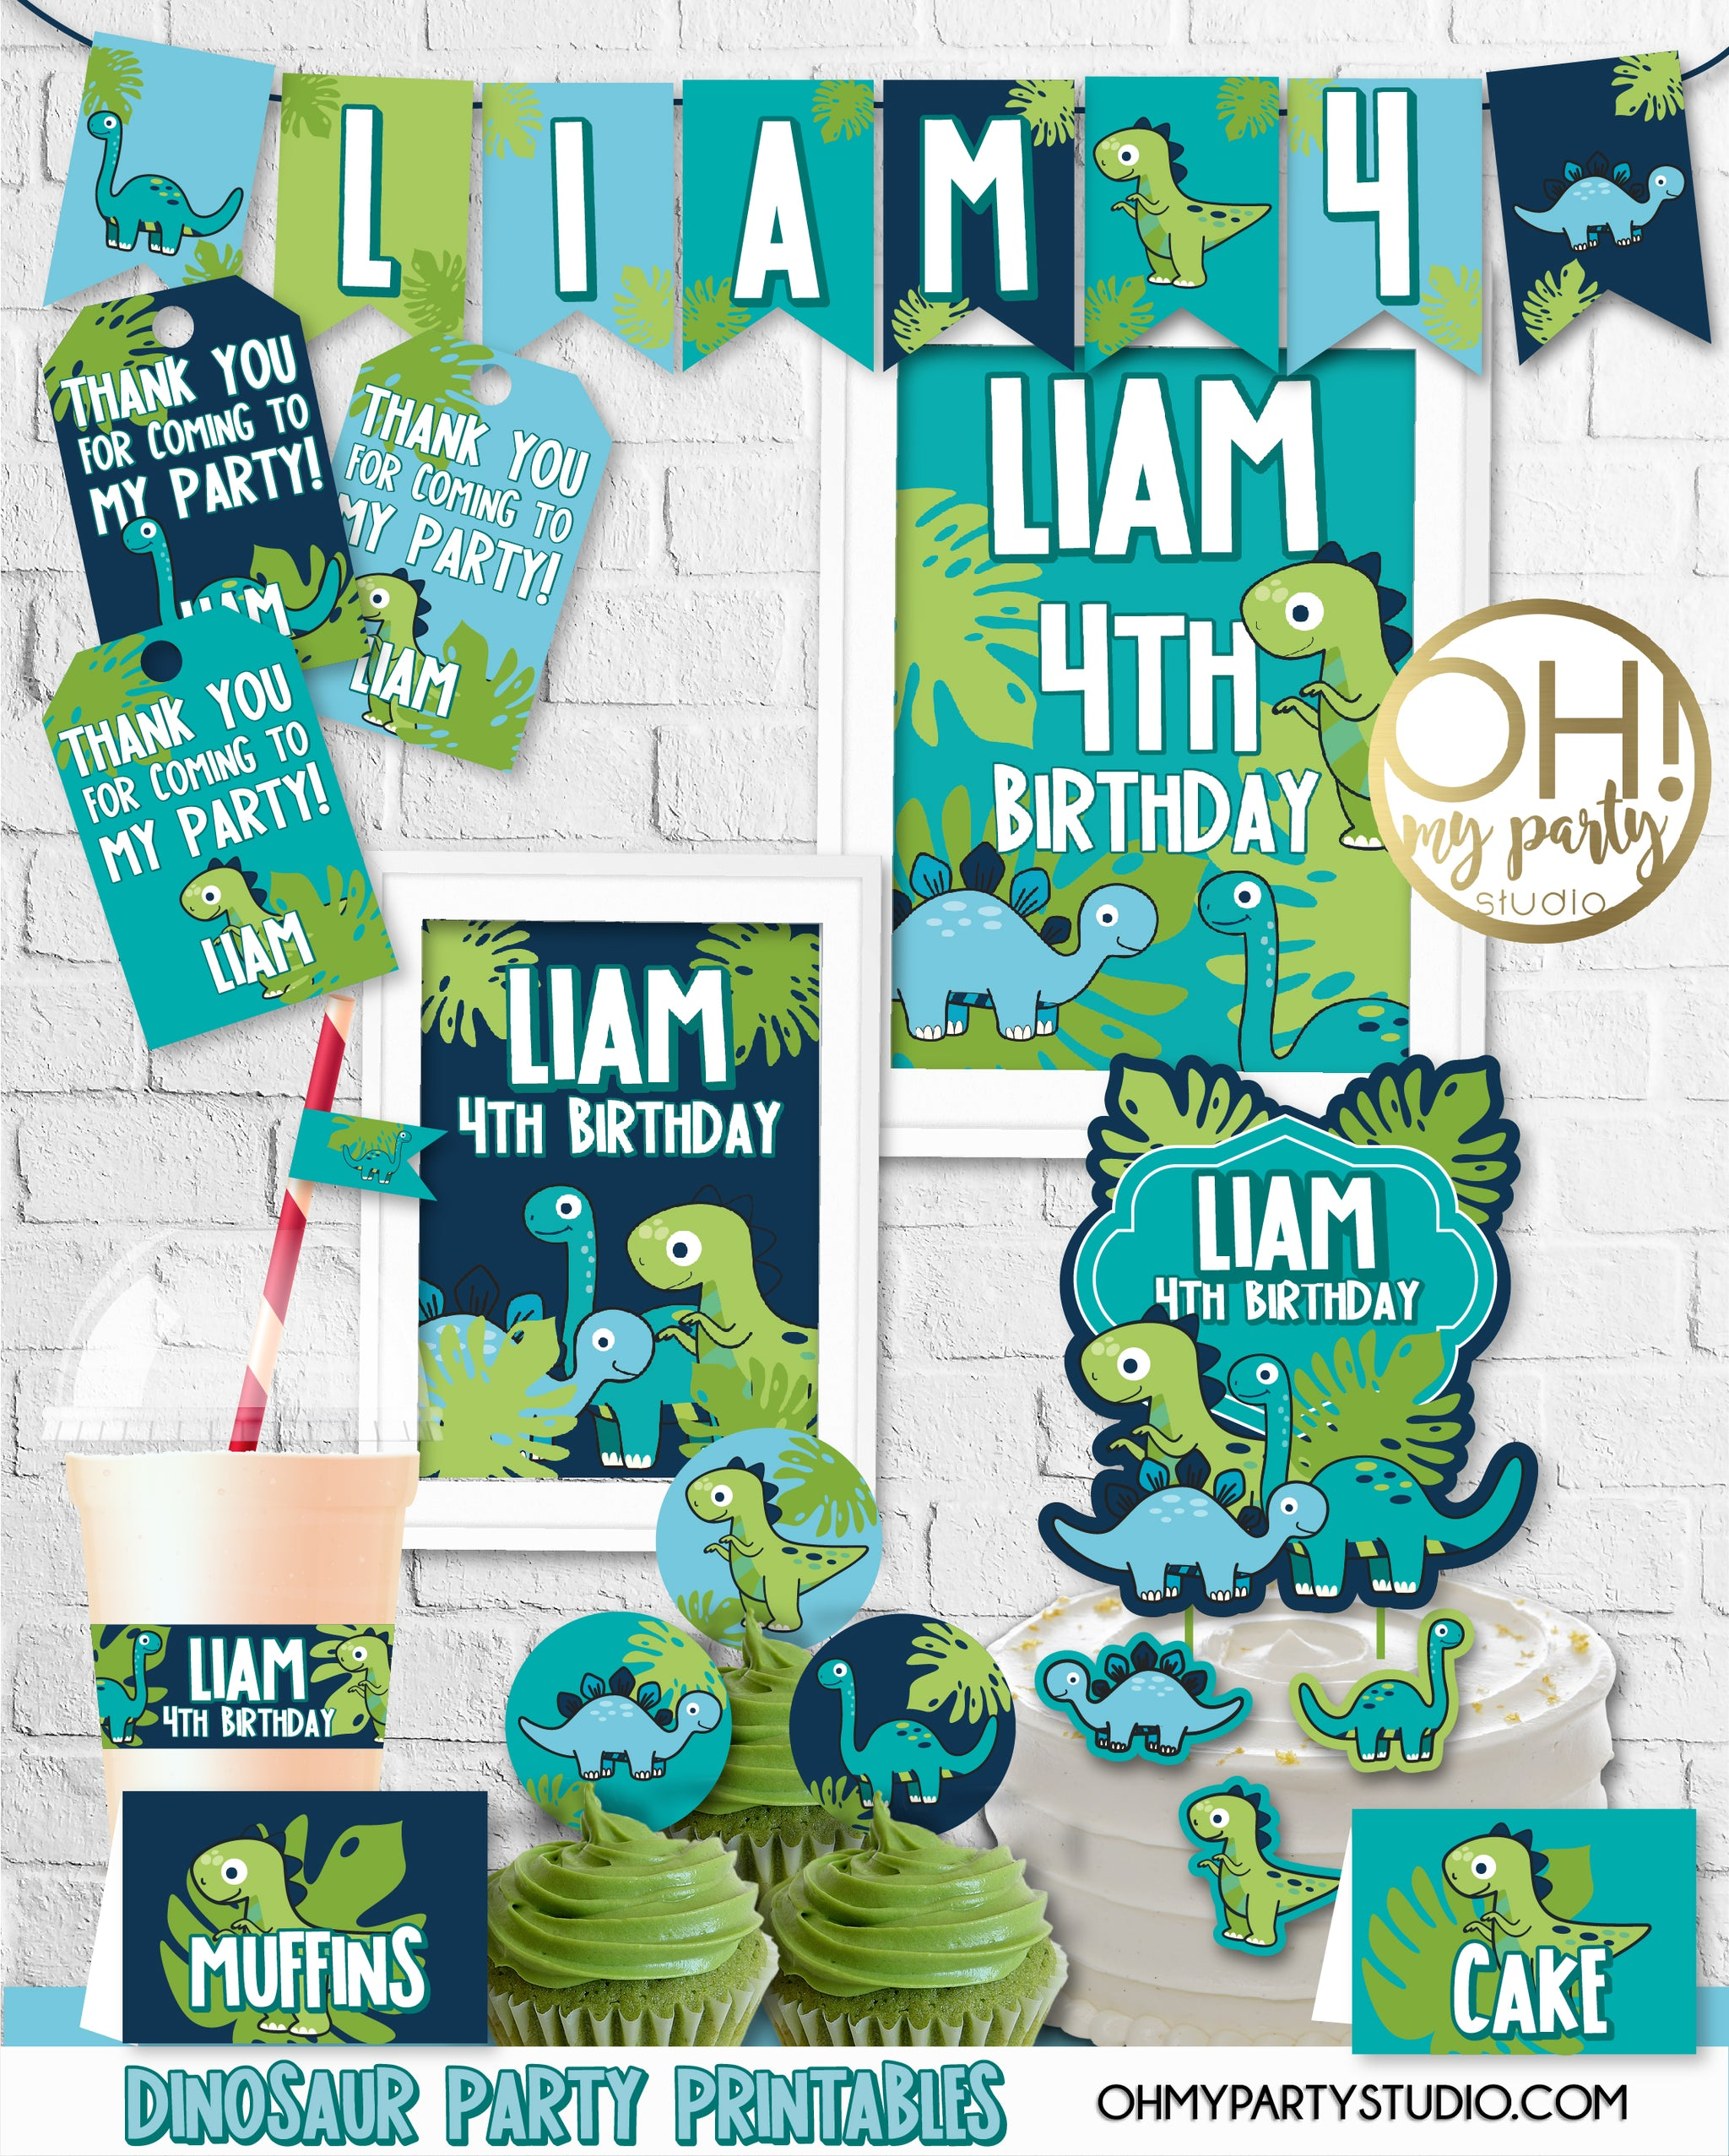 DINOSAURS PARTY DECORATIONS, DINOSAURS PARTY PRINTABLES, DINOSAUR PARTY, DINOSAURS BIRTHDAY, DINOSAURS PARTY IDEAS, DINOSAURS BIRTHDAY BANNER, DINOSAURS PARTY IDEAS DECORATIONS,DINOSAUR BIRTHDAY PARTY, DINOSAUR PARTY DECORATIONS, DINOSAUR PARTY IDEAS, DINOSAUR PARTY PRINTABLES, DINOSAUR PARTY. DINOSAUR BIRTHDAY, DINOSAUR DECORATIONS, DINOSAUR FIRST BIRTHDAY, DINOSAUR FIRST BIRTHDAY PARTY IDEAS, DINOSAUR FIRST BIRTHDAY DECORATIONS